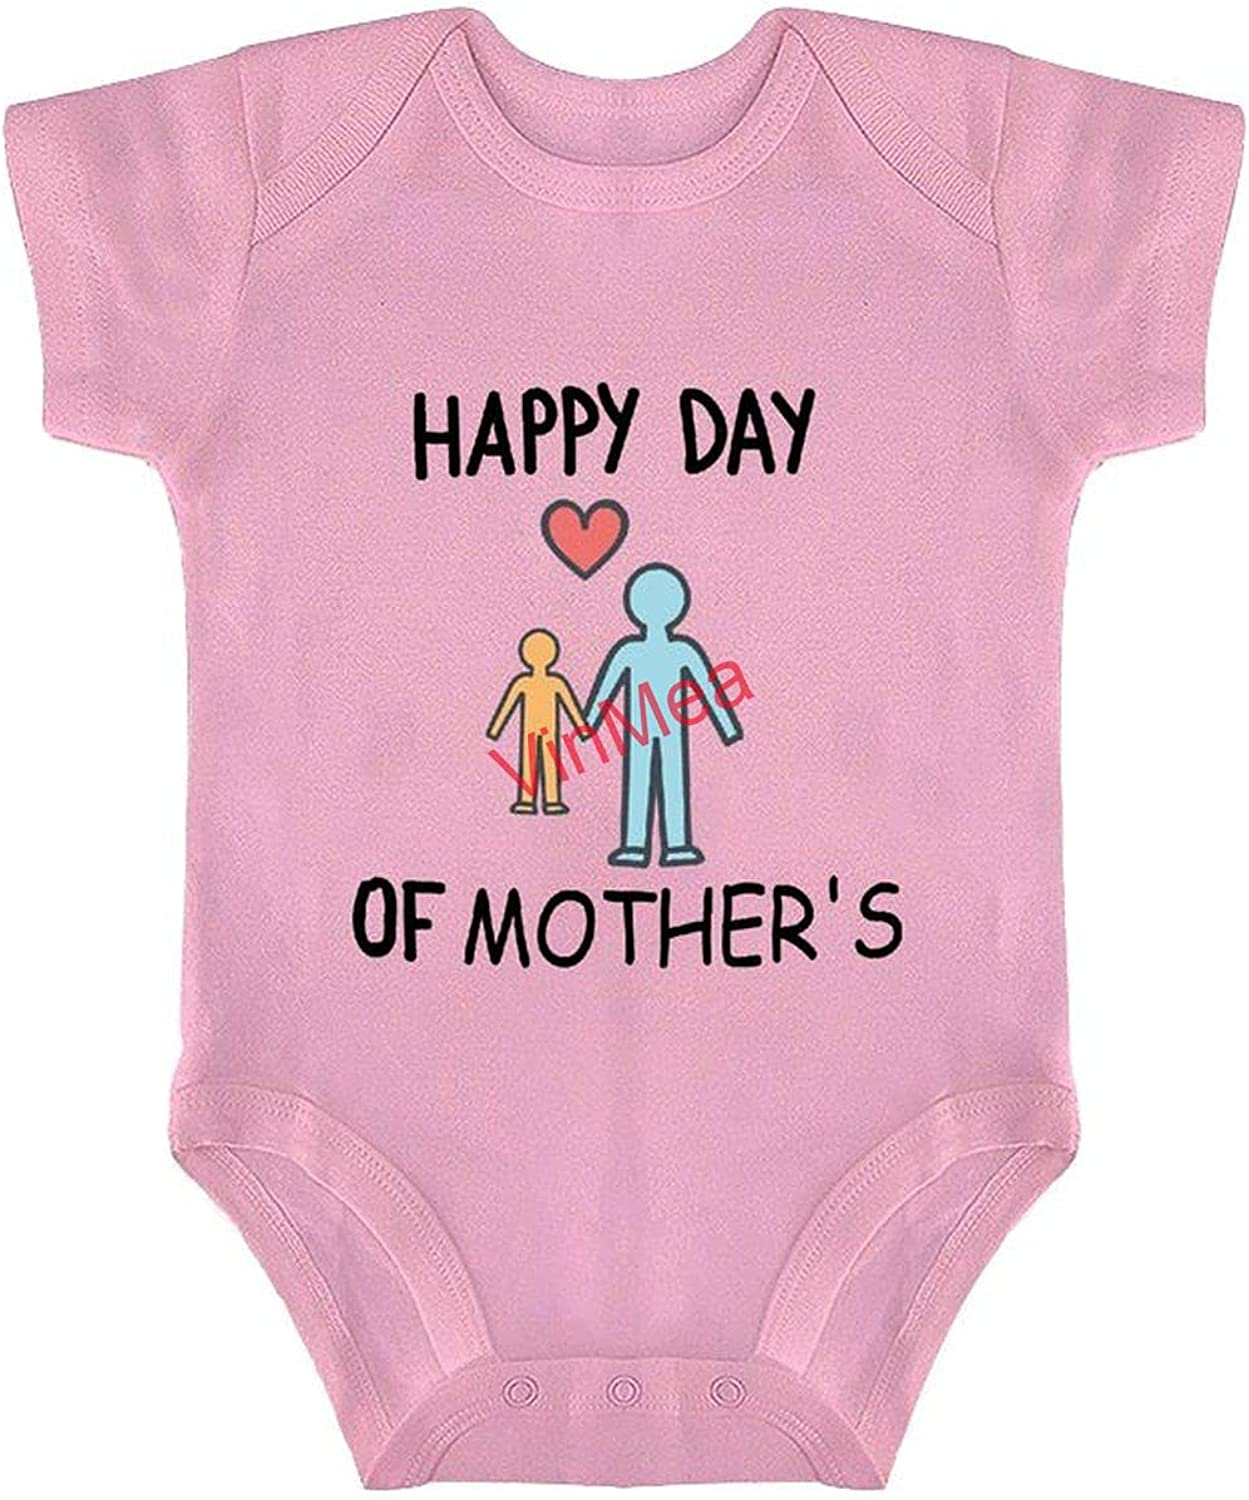 Cute Bodysuit For Baby Popular brand in the world Sale SALE% OFF Bod Onesie Happy-Mother'S-Day Infant